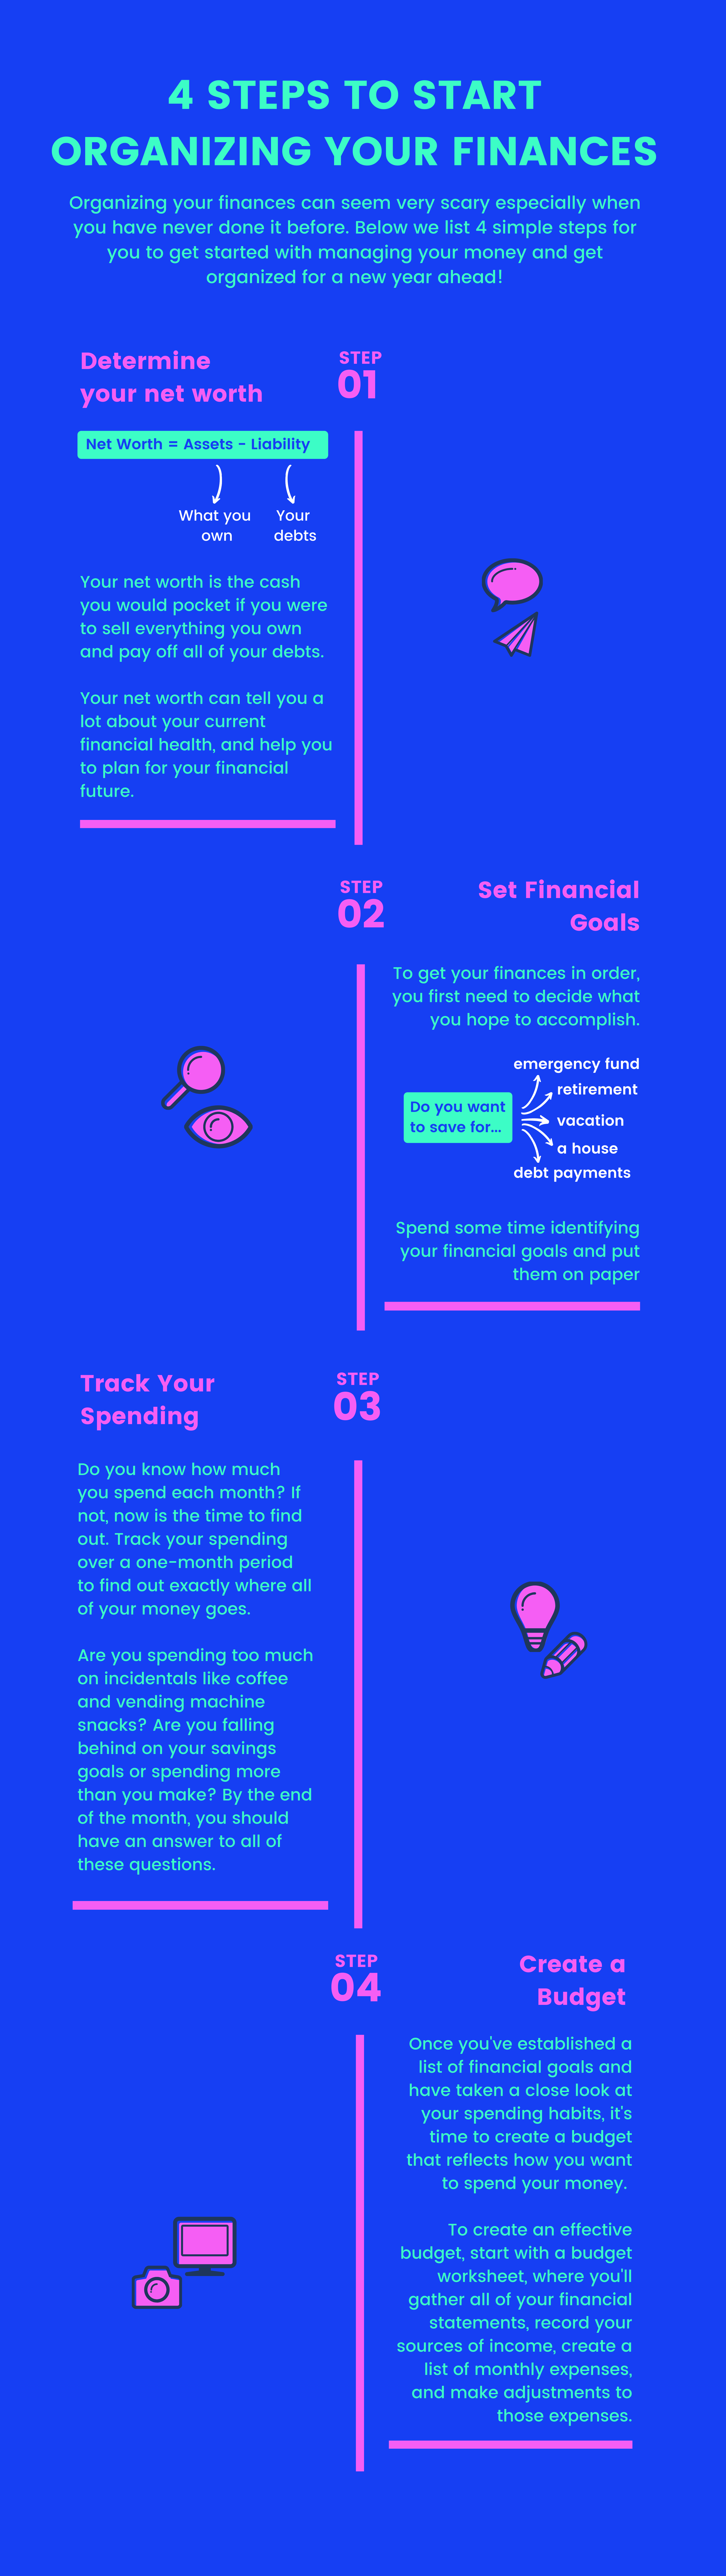 4 Steps To Organize Your Finances - An Infographic